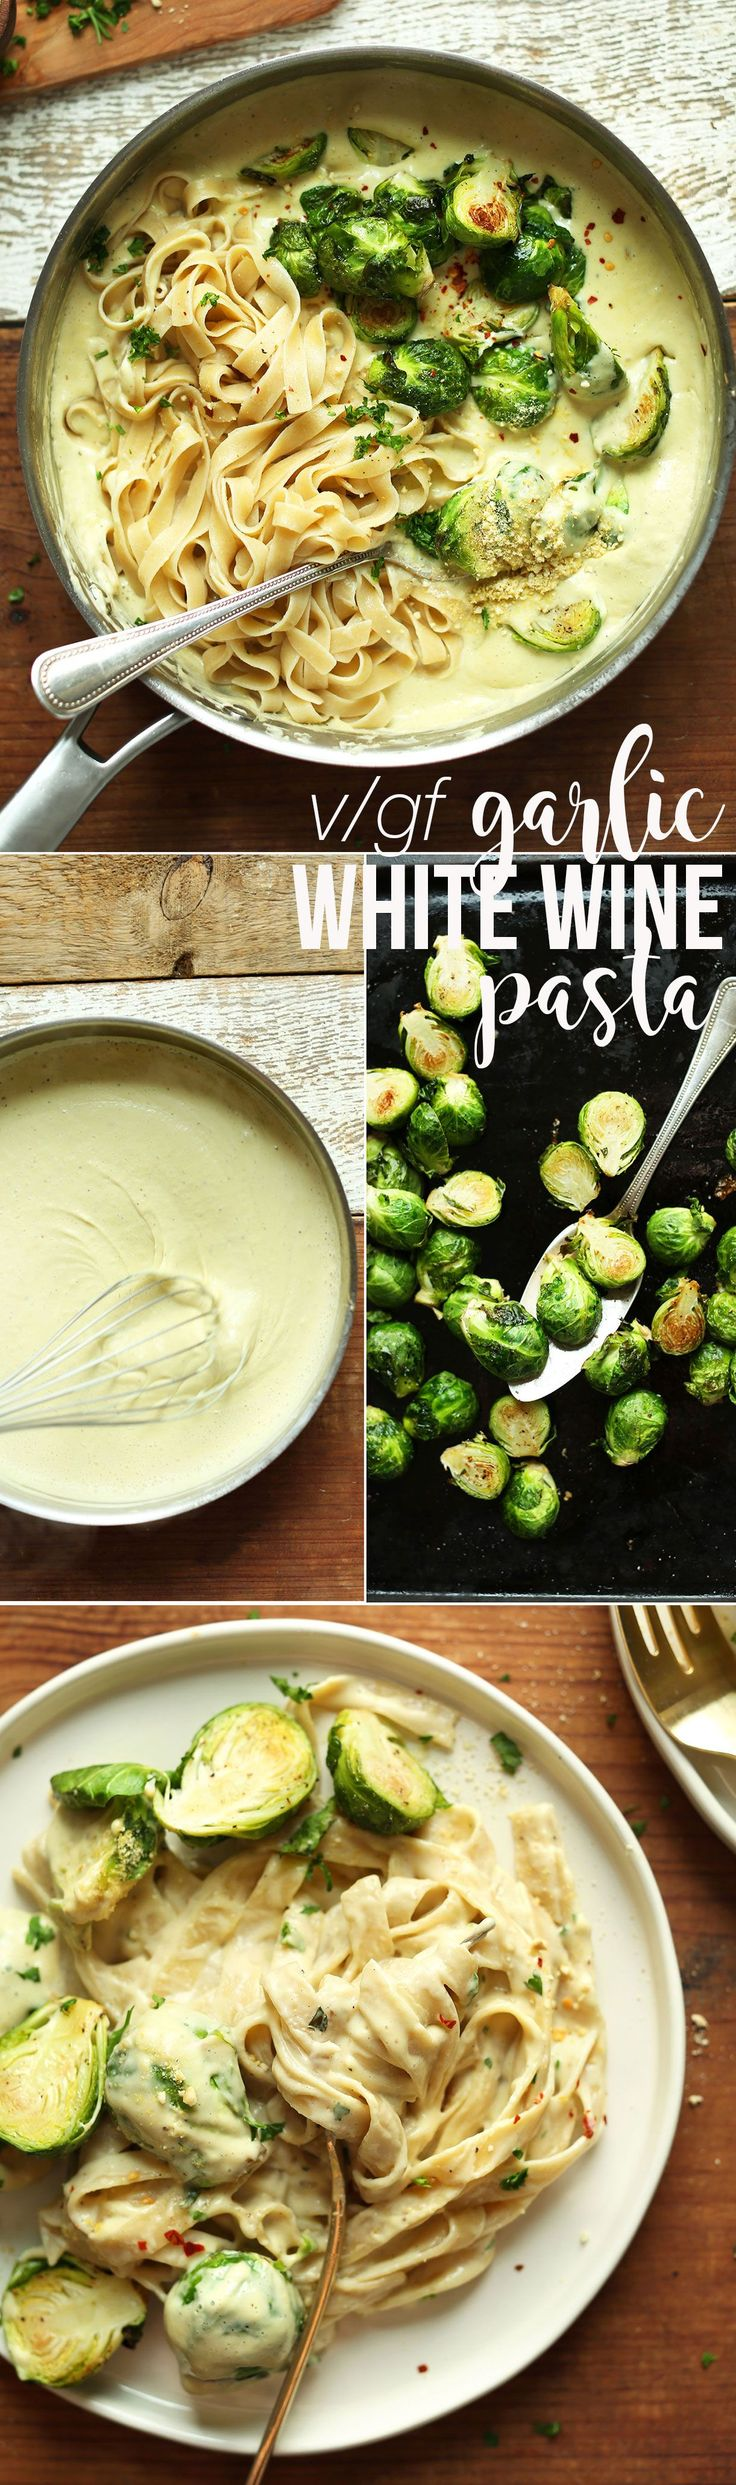 INCREDIBLE 30-minute White Wine + Garlic Pasta with Roasted Brussels Sprouts! Quickly becoming a fan favorite for good reason! #vegan #glutenfree #pasta #recipe #plantbased #minimalistbaker